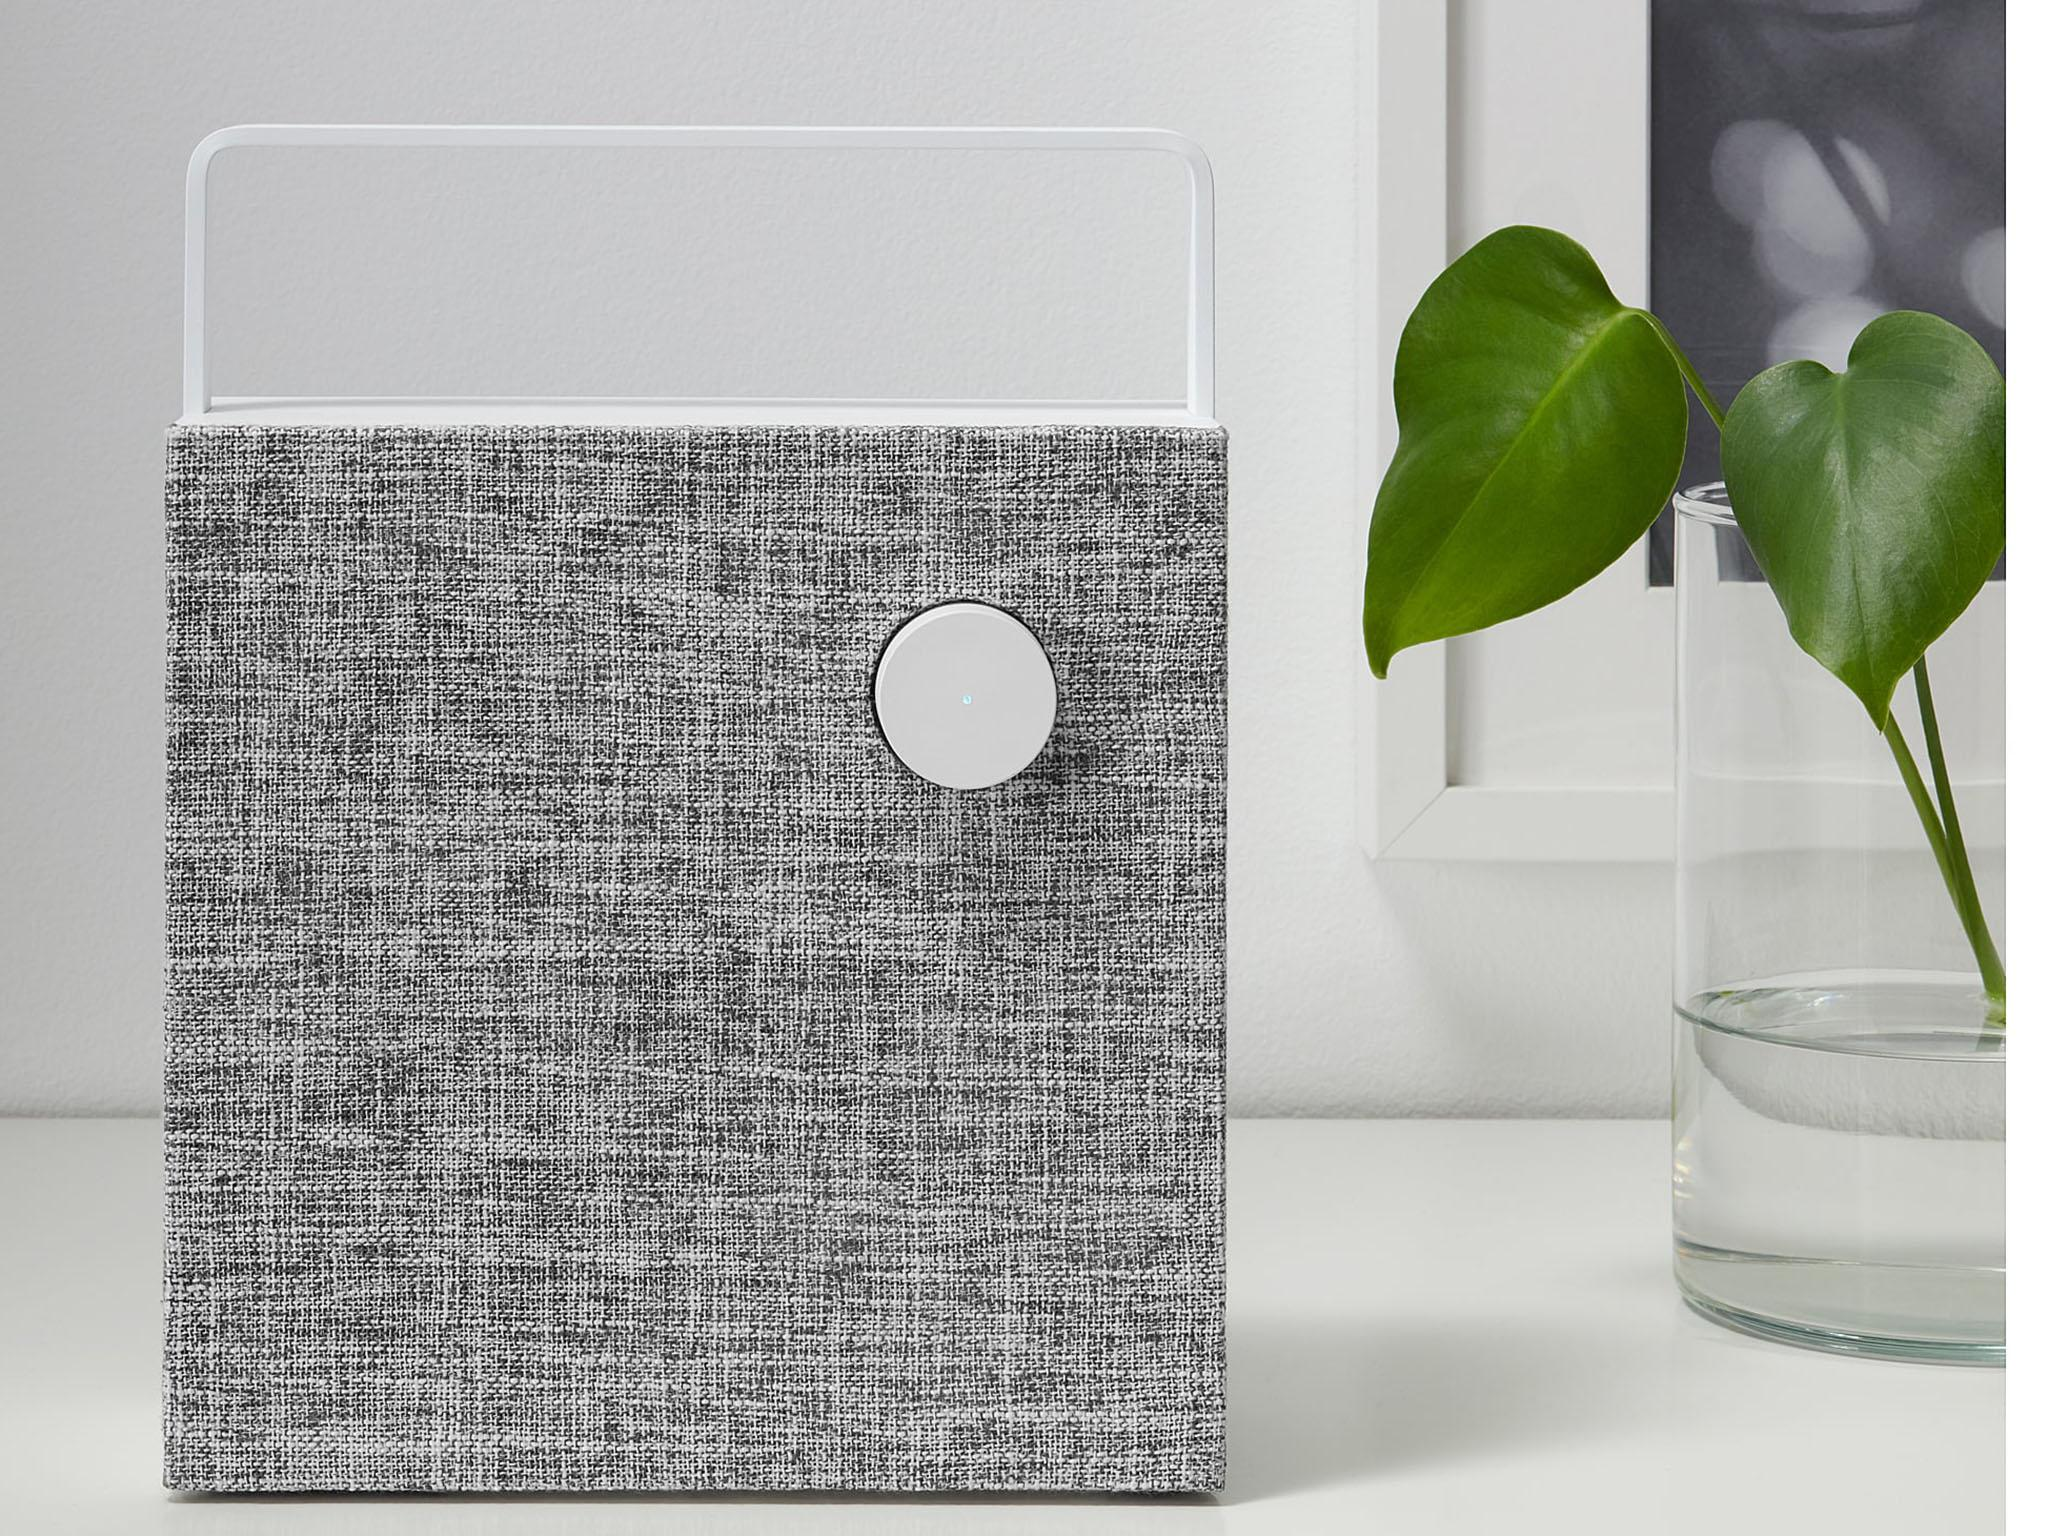 10 Best Bluetooth Speakers The Independent Home Stereo Speaker Wiring Diagrams On Whole House Audio Ikea Is Far From First Name To Spring Mind When It Comes Products But Its Eneby Are A Surprisingly Competent Entry